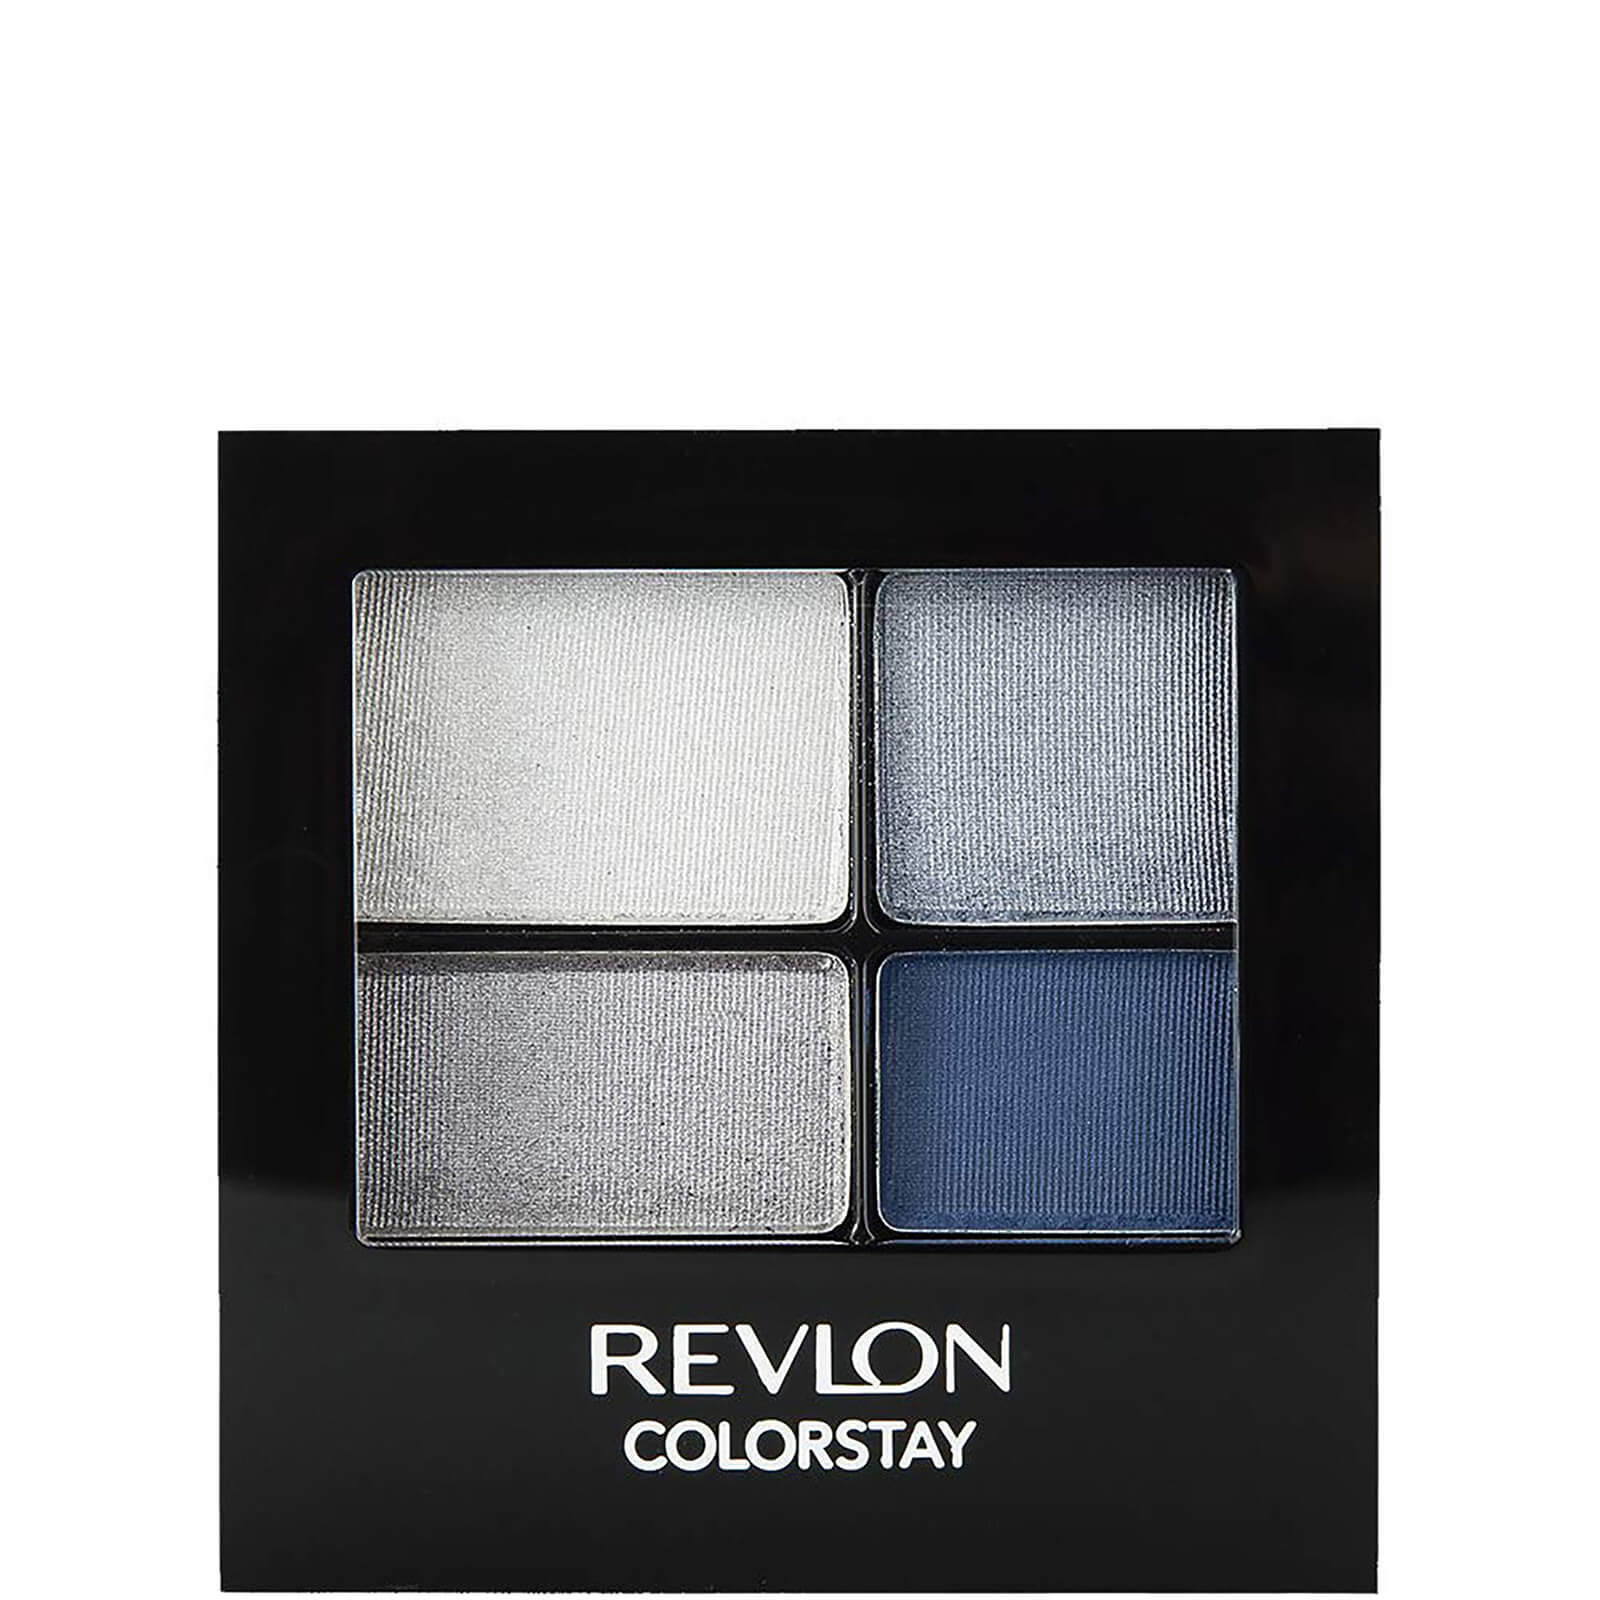 Image of Revlon Colorstay 16 Hour Eyeshadow Quad - Passionate